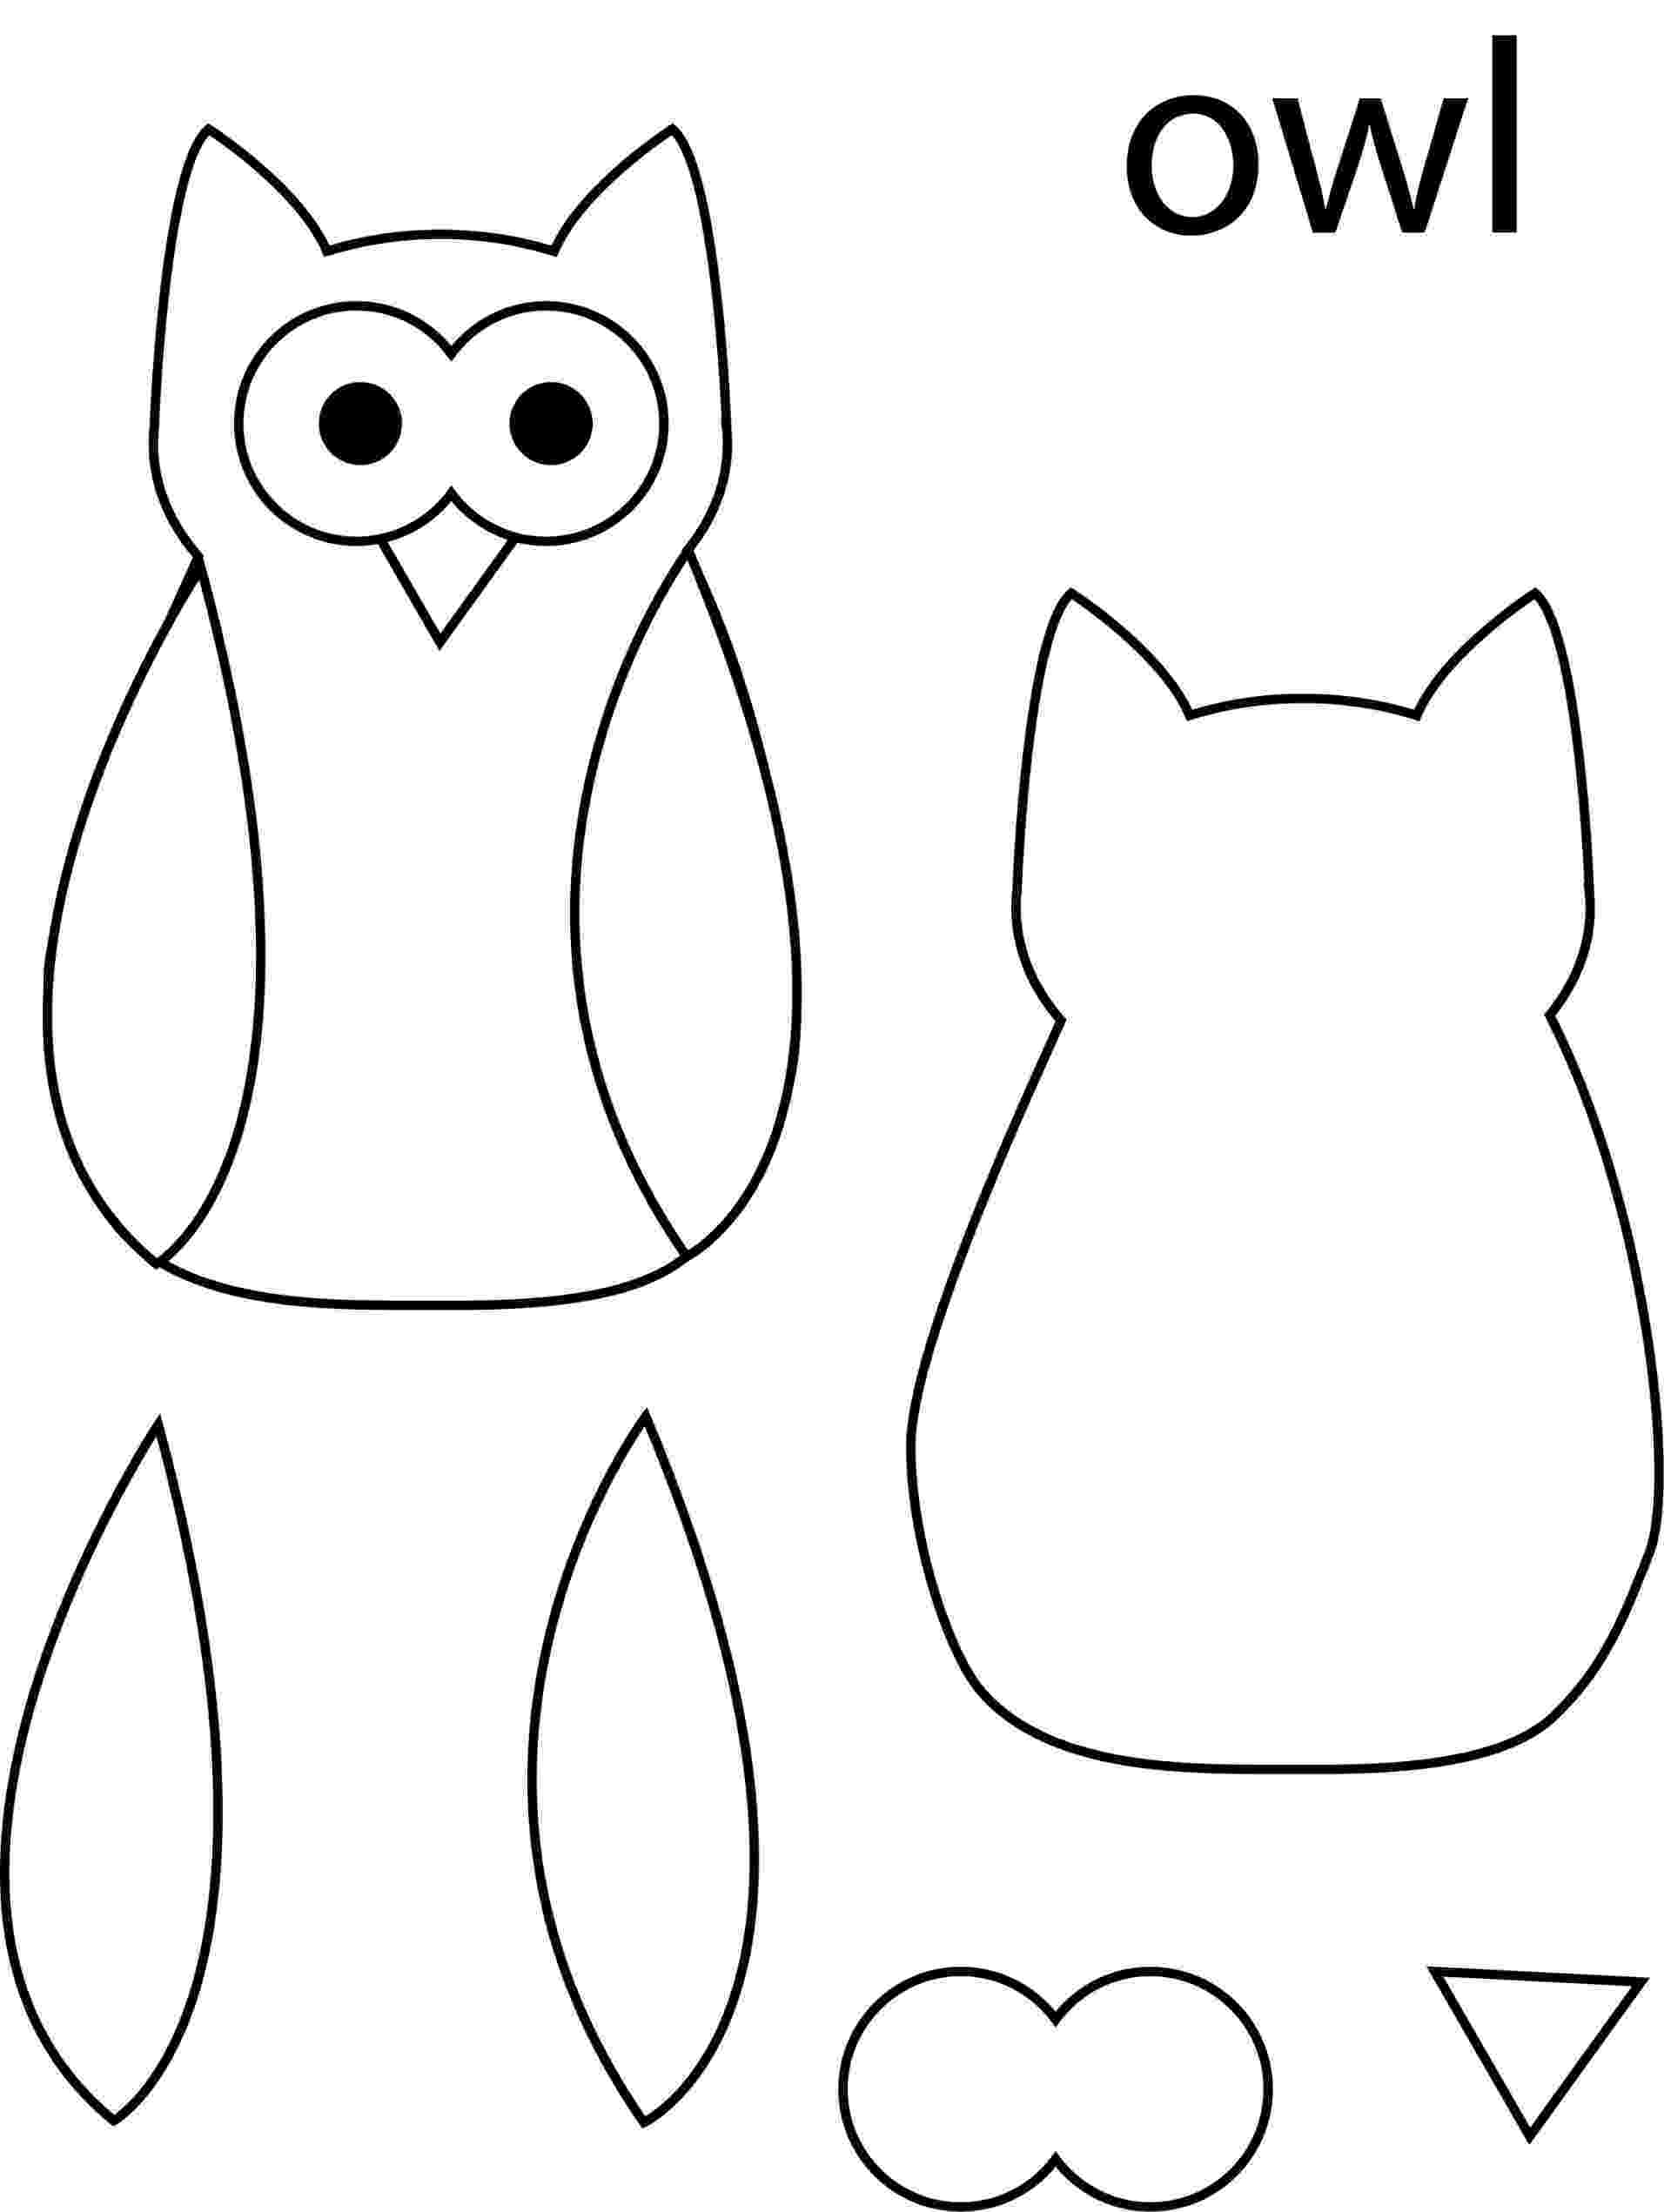 owl colouring template owl template google search owl clip art owl images owl colouring template